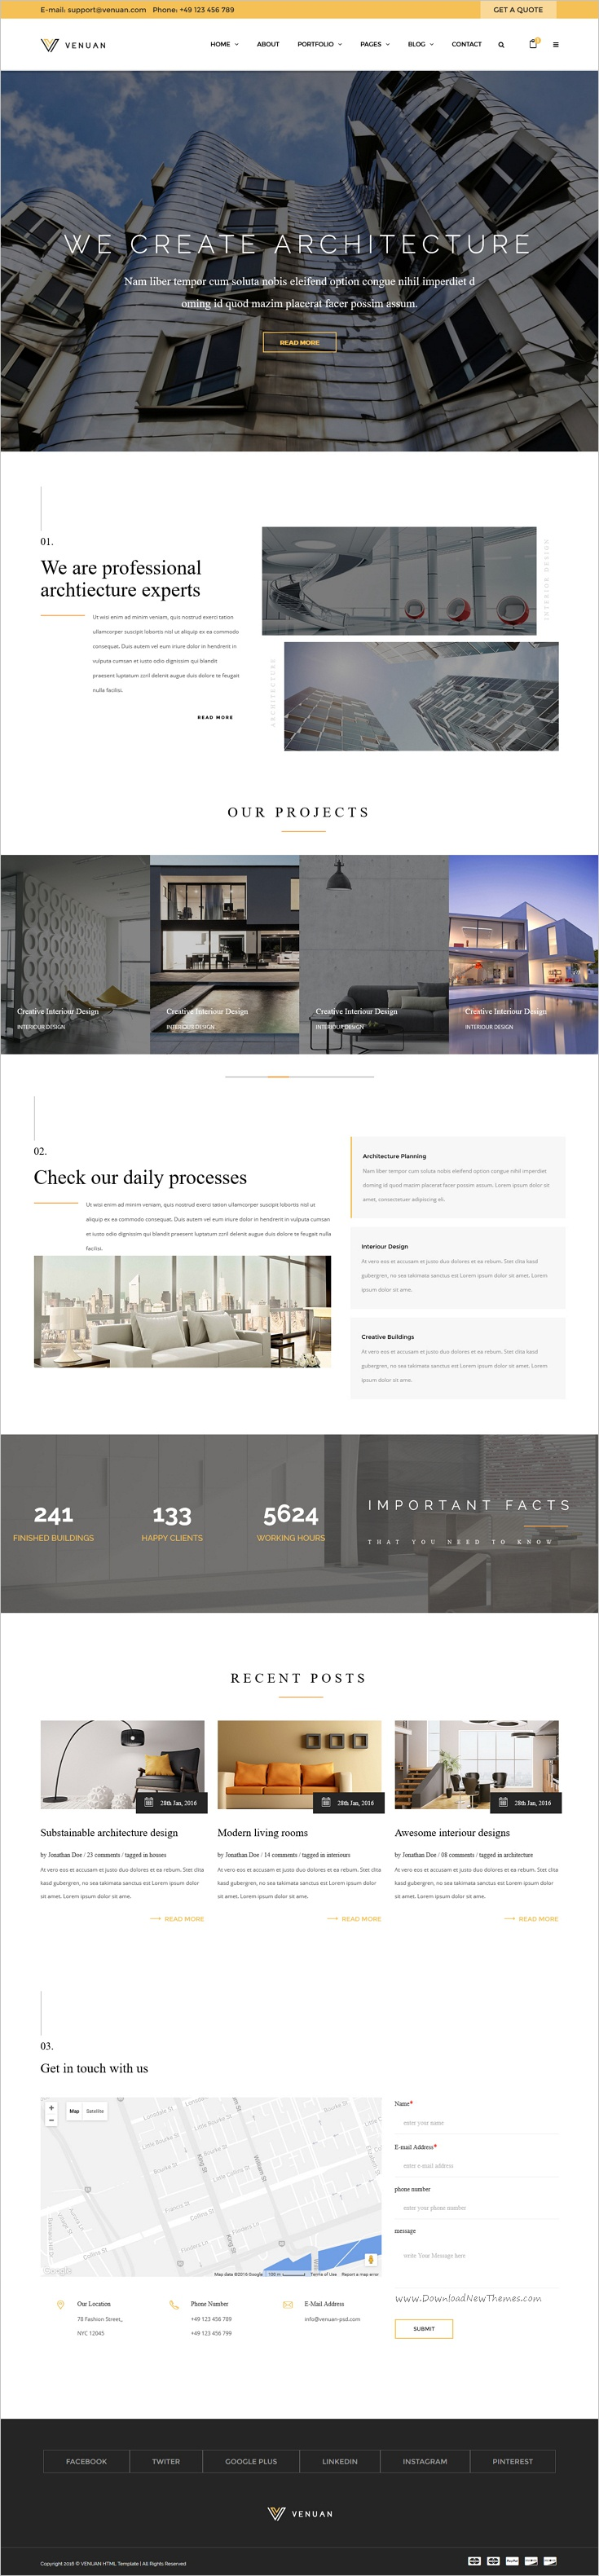 Pin by Web Design Inspiration on Free Bootstrap Themes